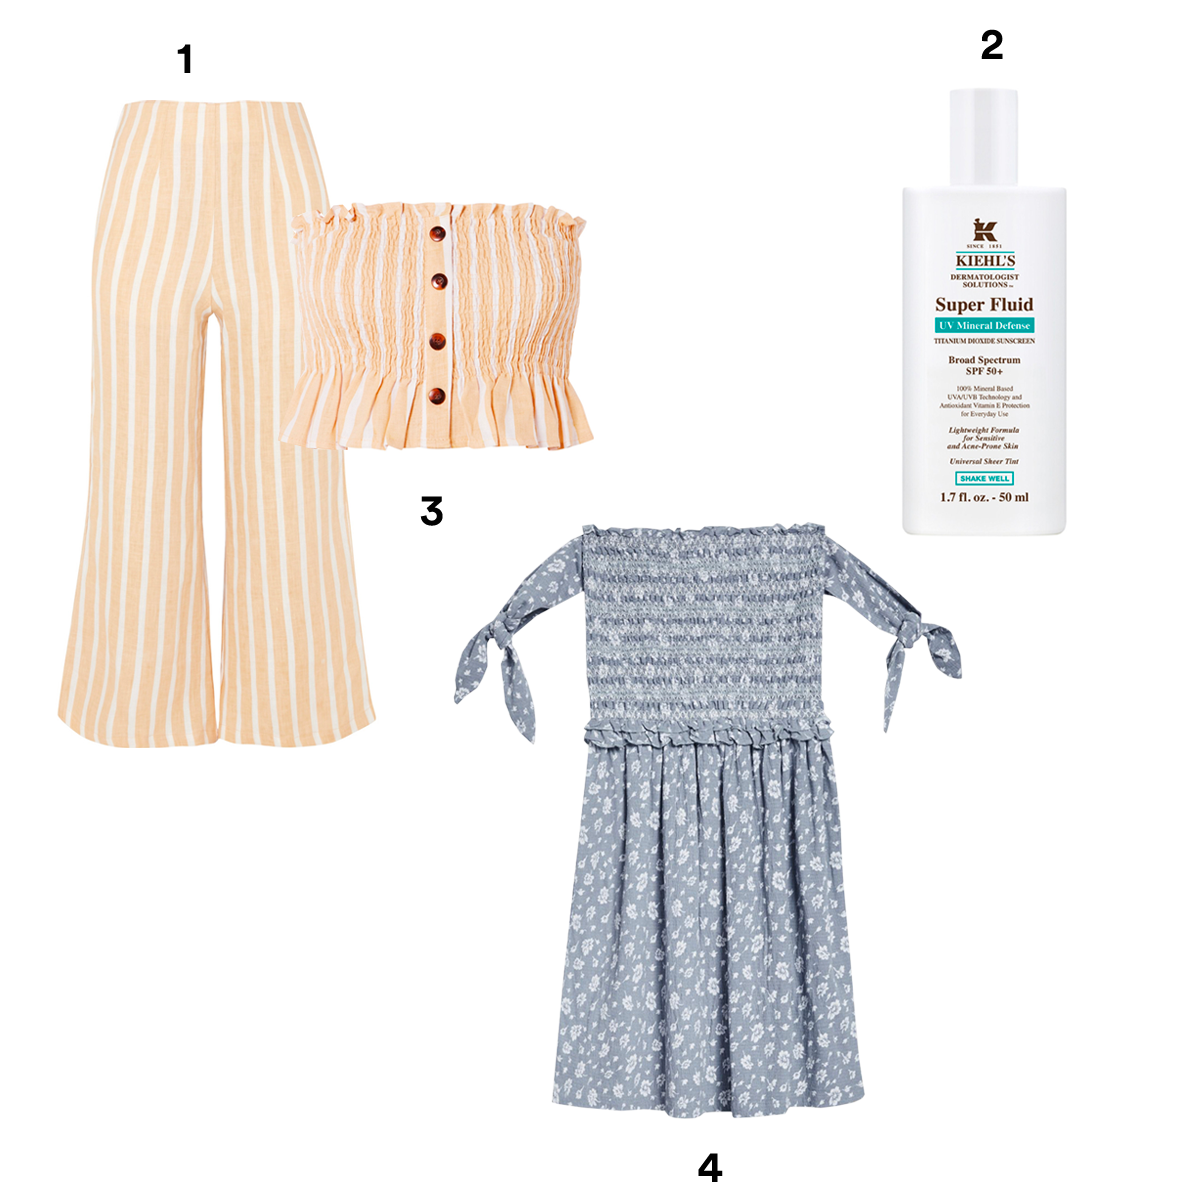 1.) FAITHFULL THE BRAND Thomas Cropped Wide-Leg Striped Linen Pants, available at Bloomingdales. 2.) KIEHL'S Dermatologist Solutions™ Super Fluid UV Mineral Defense Sunscreen SPF 50+, availabe at Barneys New York. 3.) FAITHFULL THE BRAND Sloan Shirred Striped Linen Top, available at Bloomingdale's. 4.) TOPSHOP Tie Sleeve Print Bardot Dress.